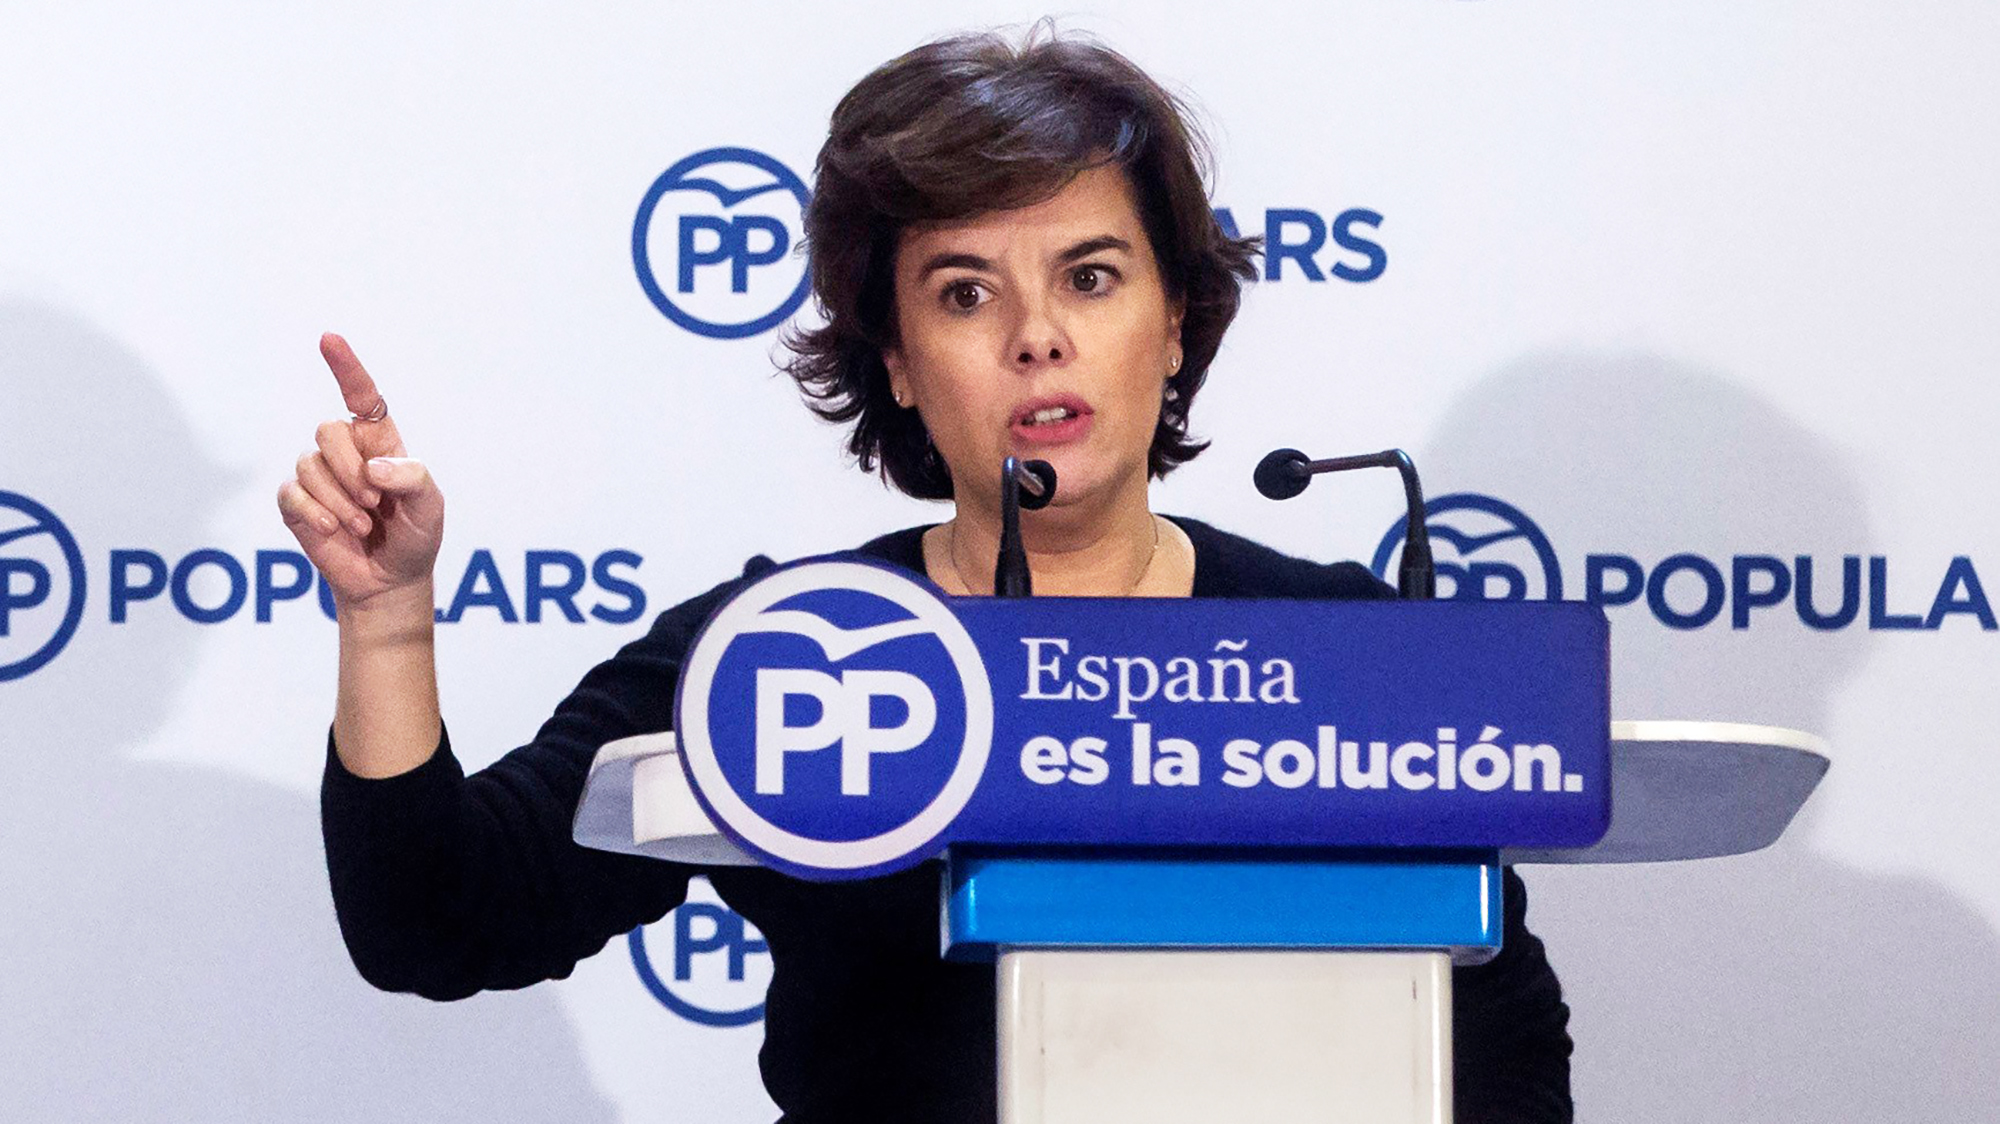 epa06393867 Spanish Deputy Prime Minister Soraya Saenz de Santamaria delivers a speech at a meeting of head of the candidate